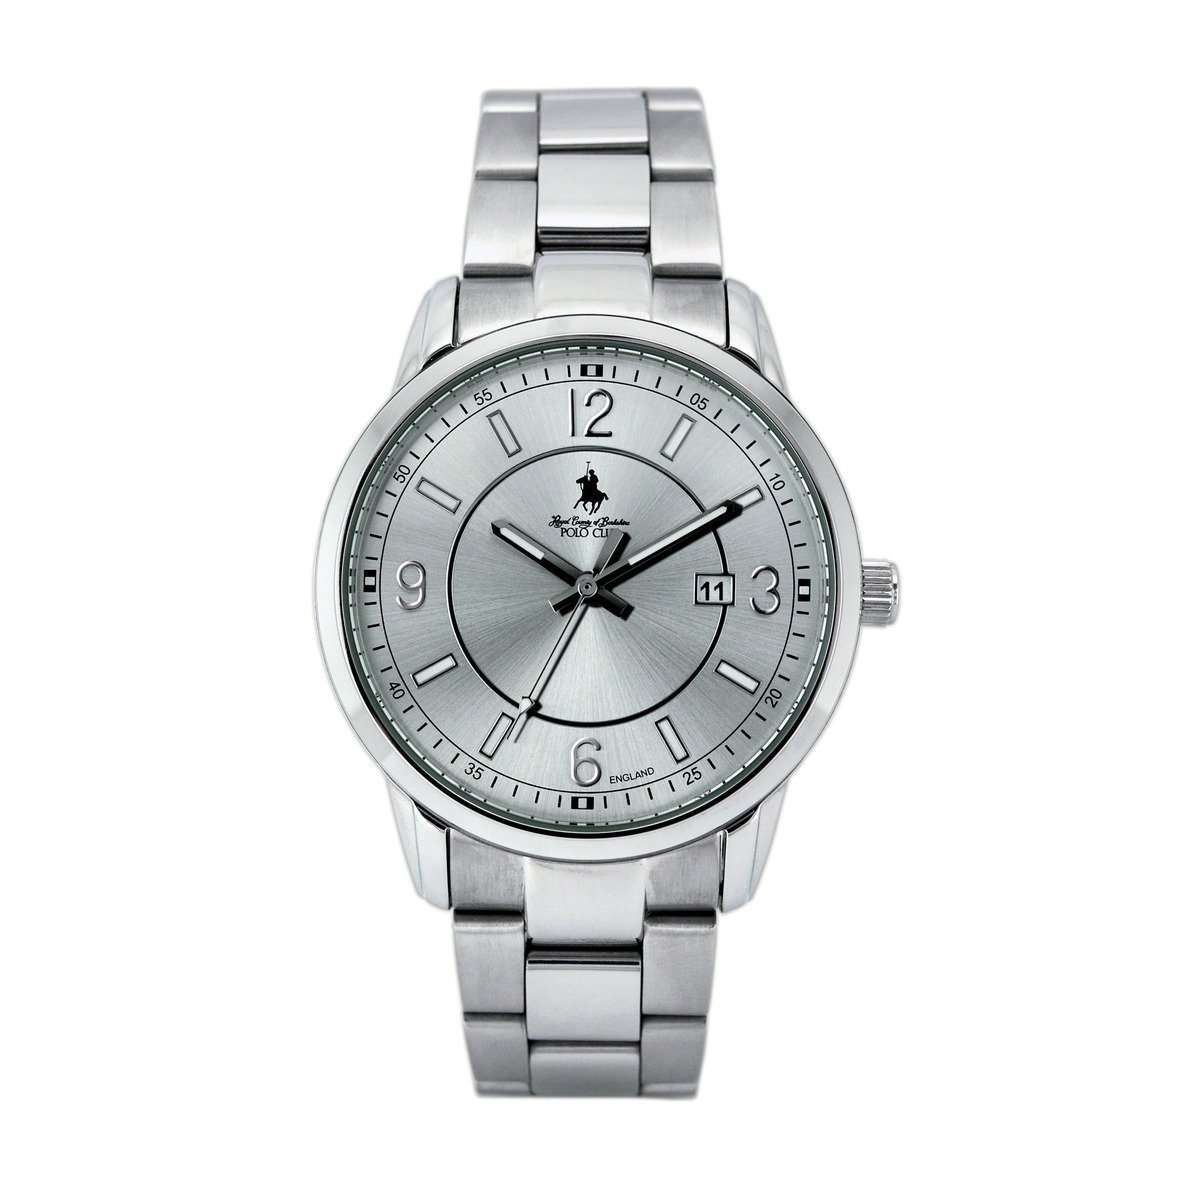 PL219-963SV-B Watch